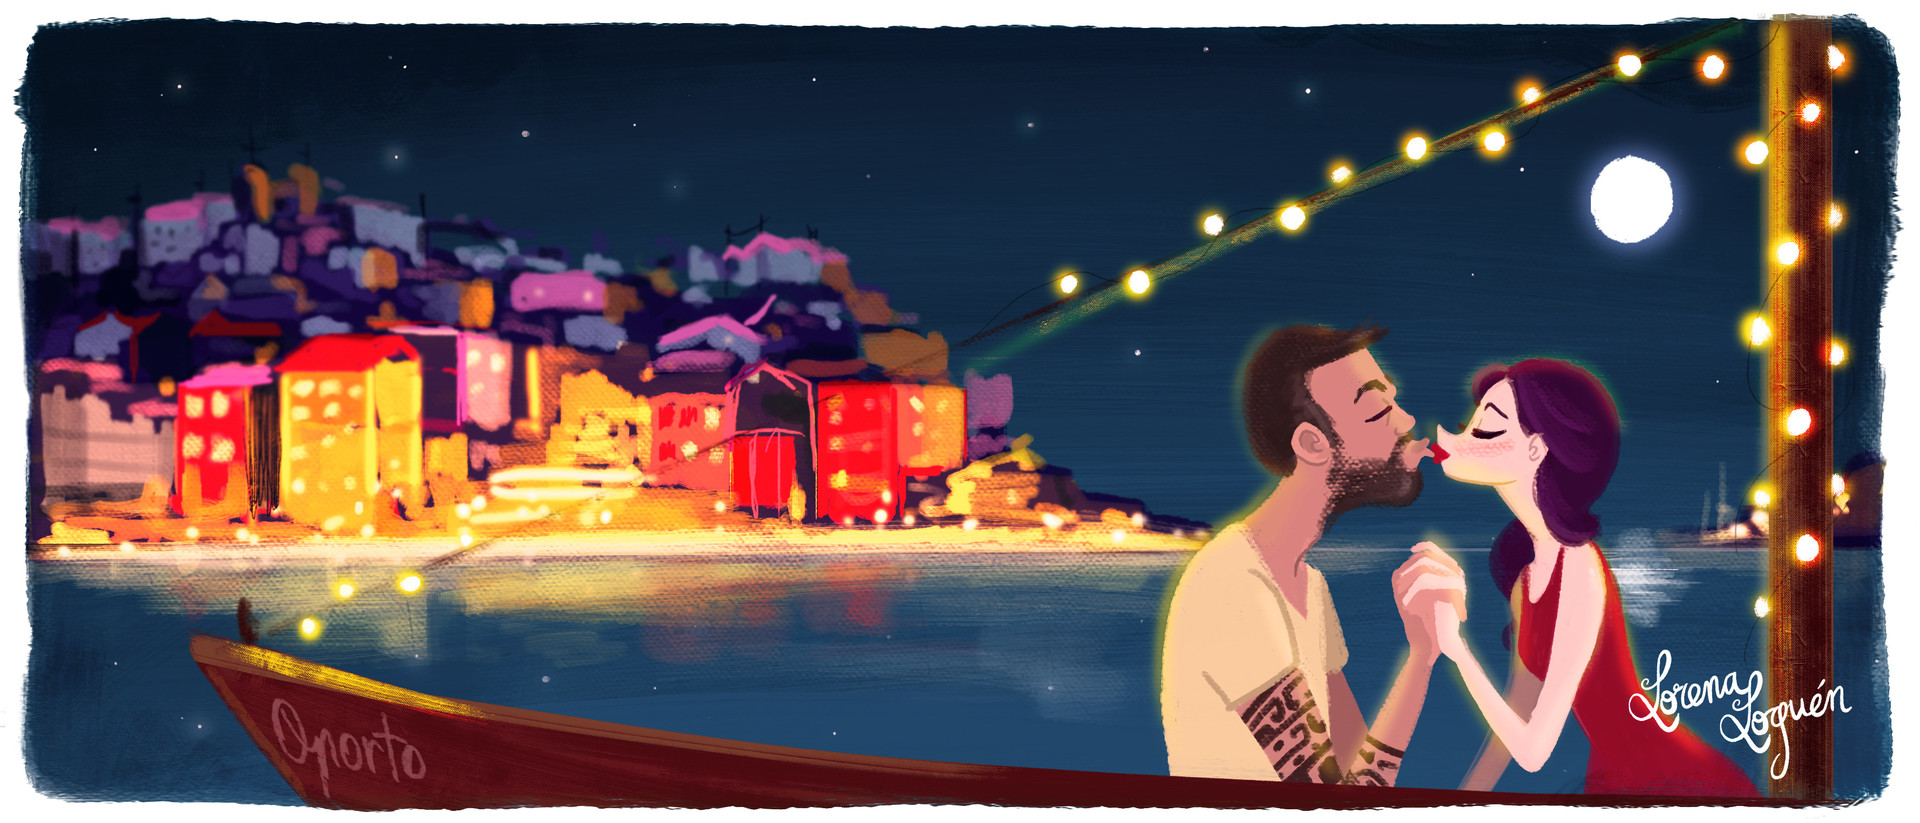 Romance in Porto - Illustration